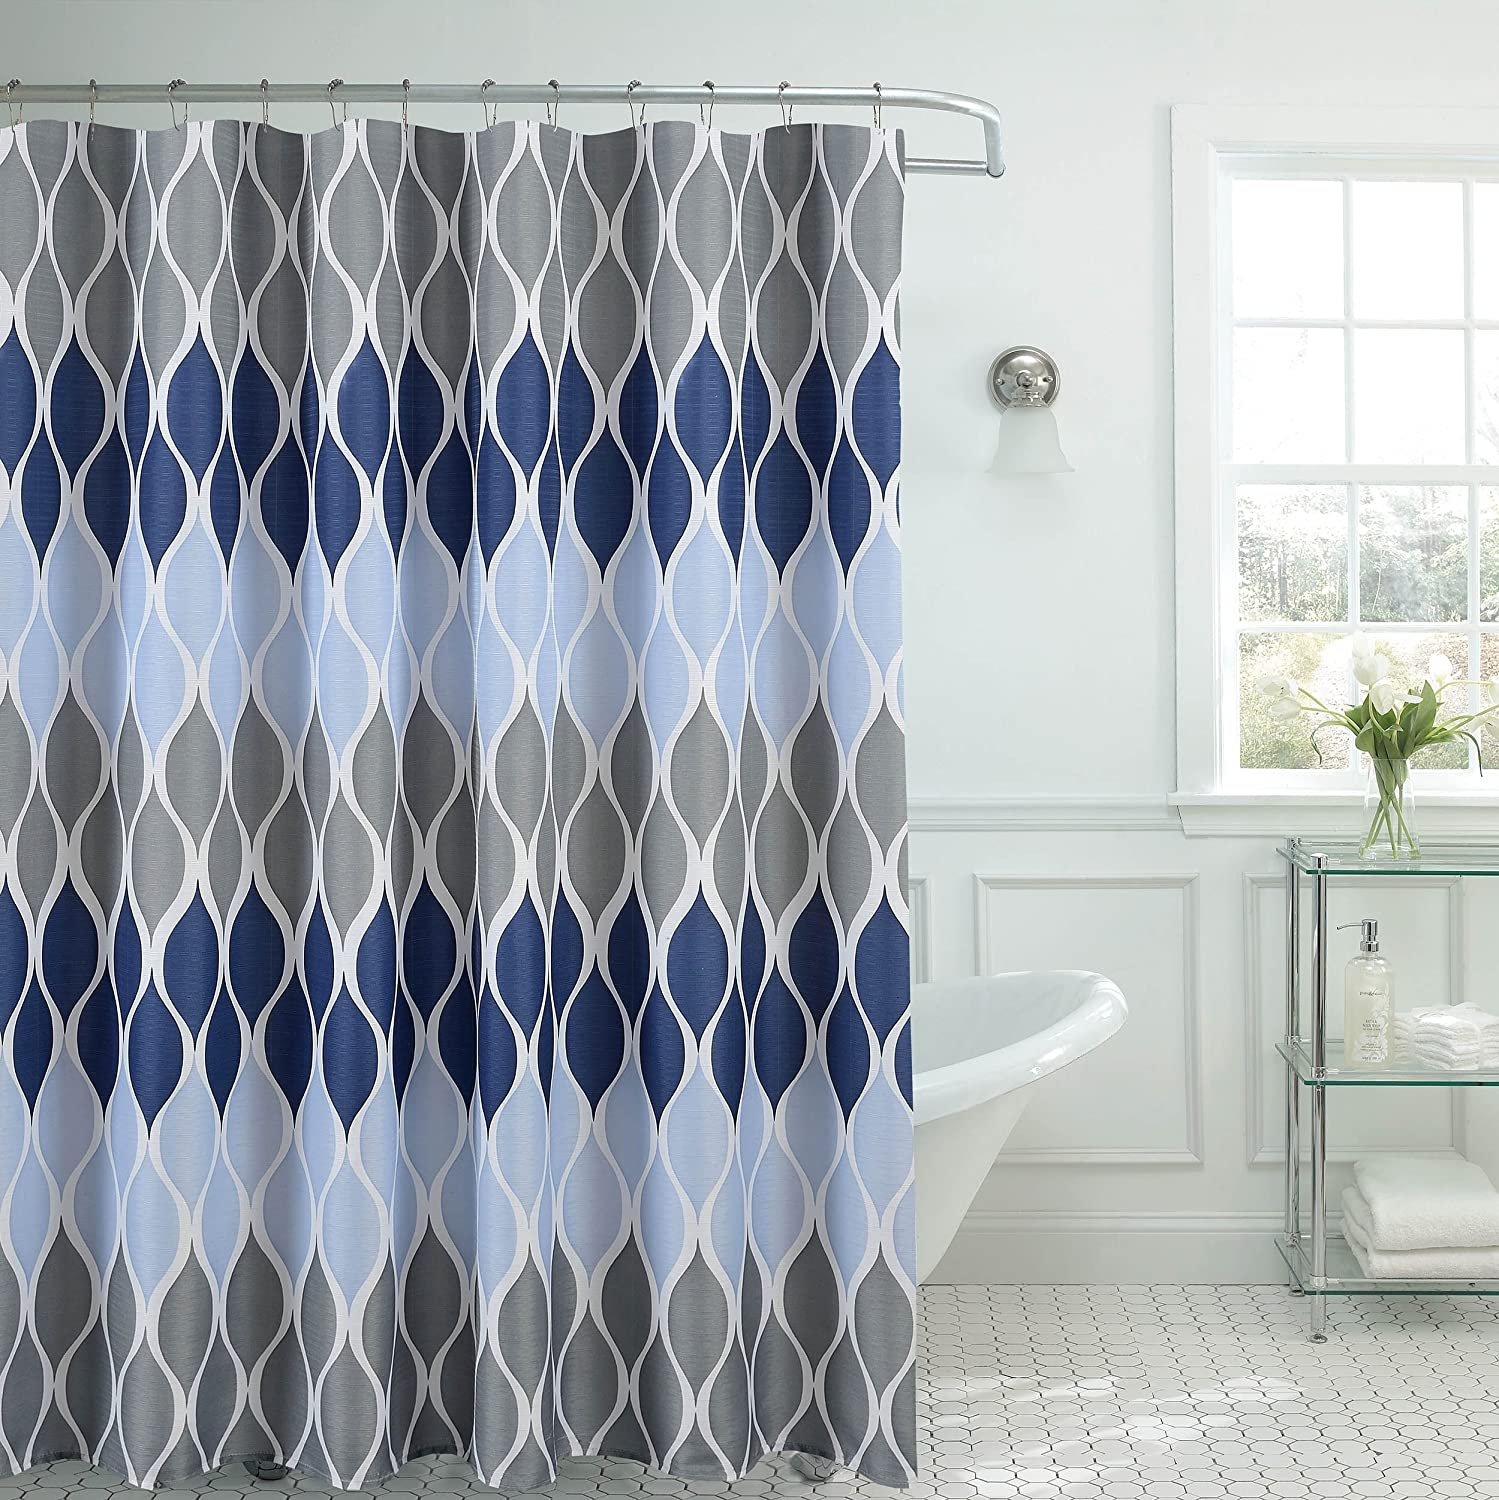 Clarisse Faux Linen Textured 70 X 72 In Shower Curtain With 12 Metal Rings Blue Home Kitchen